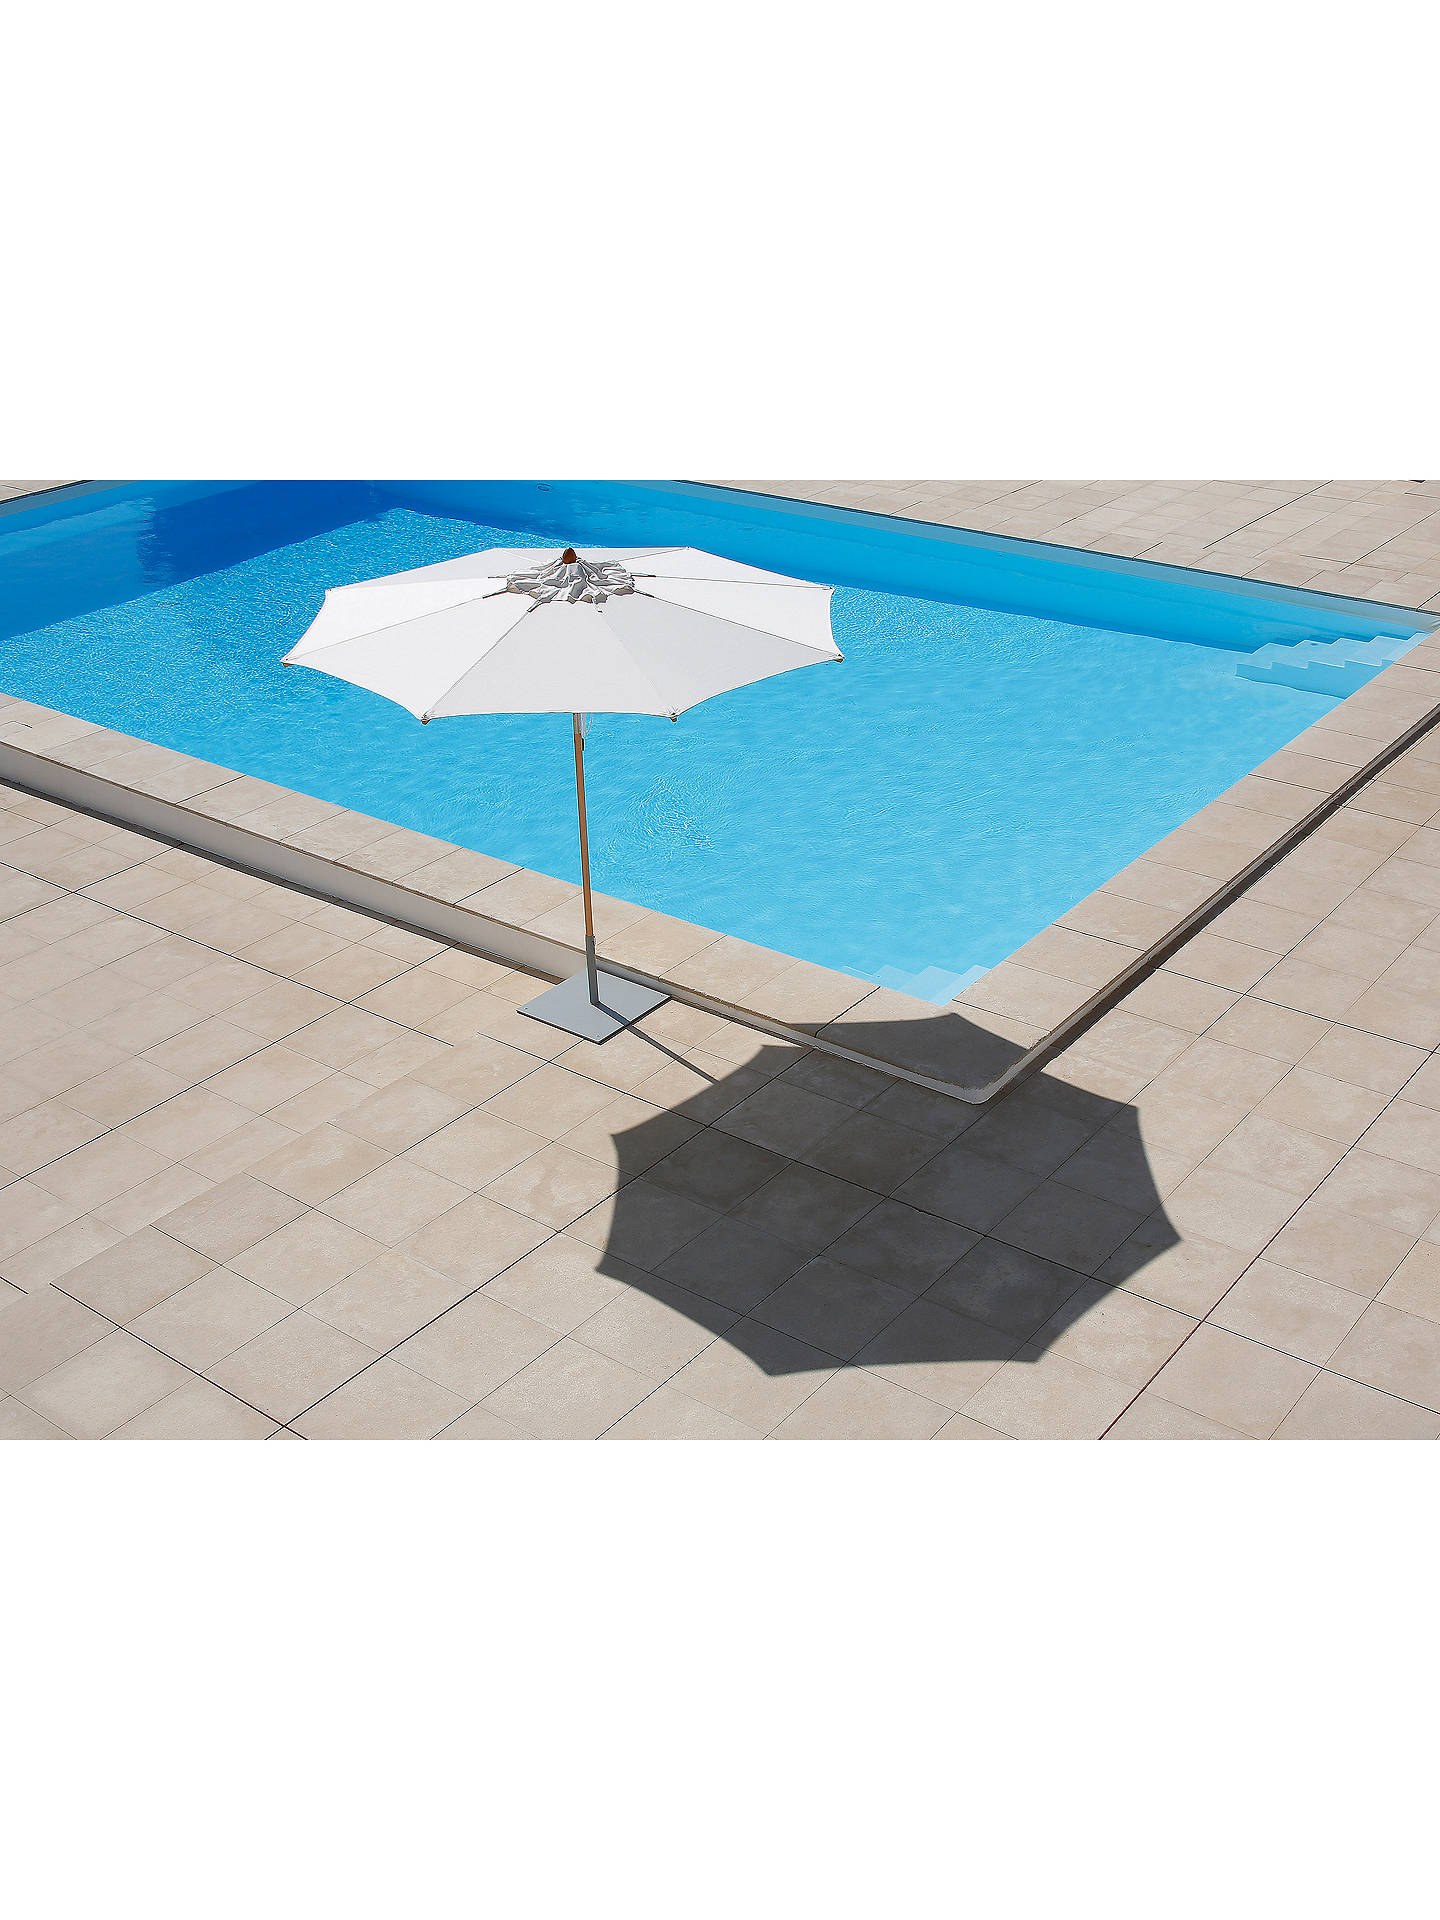 Buy Barlow Tyrie Napoli Freestanding Round Parasol, 2.8m Online at johnlewis.com